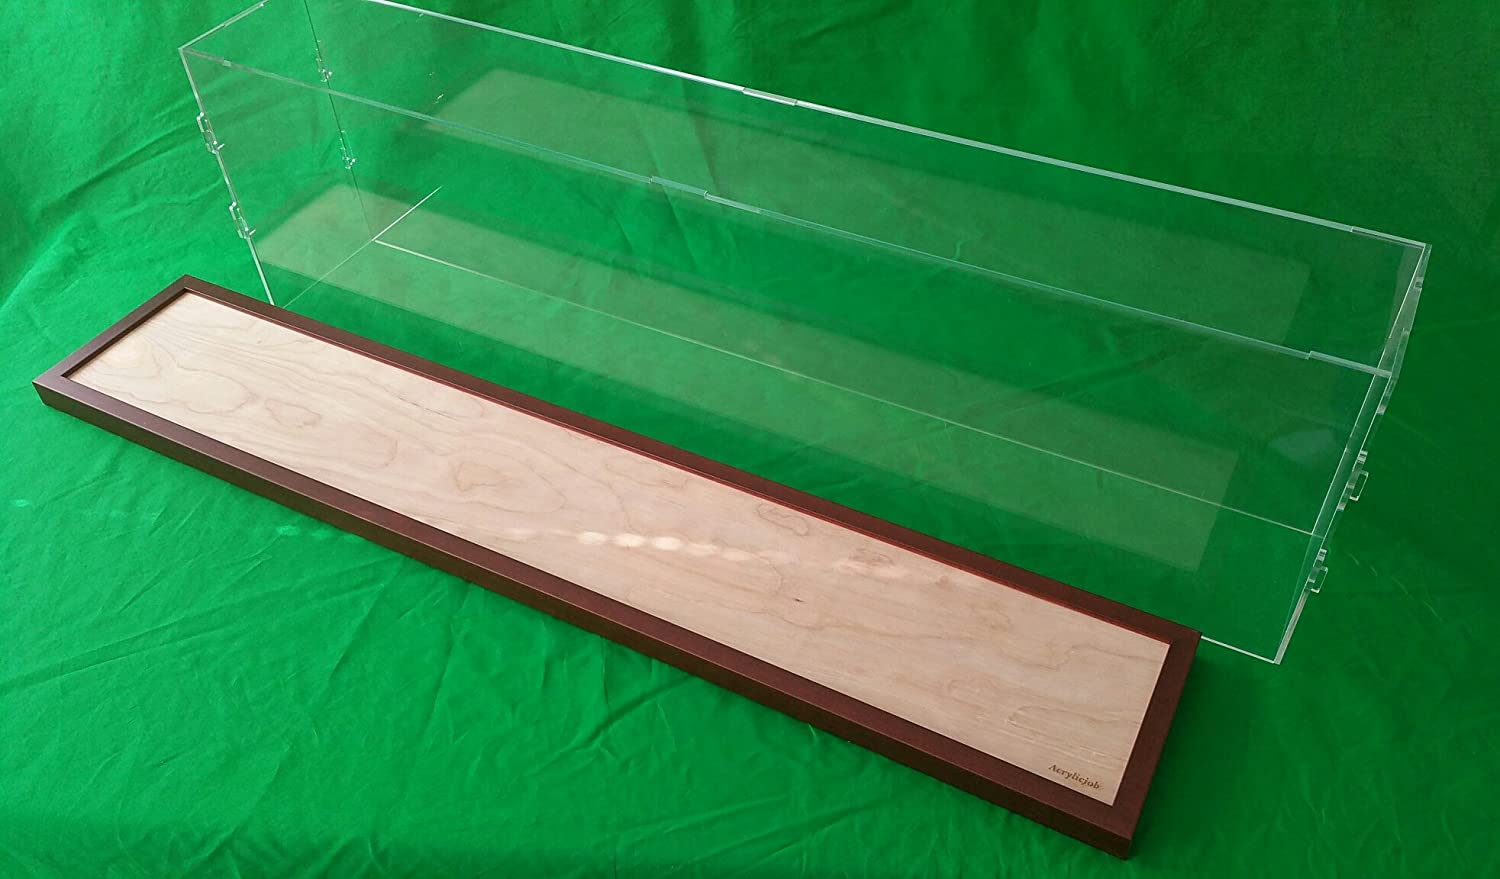 42 L x 6 W x 12 H Display Case Box for Model Cruise Ships and Ocean Liner LGB and G Scale Trains 1//32 1//23 Plexiglass Acrylic